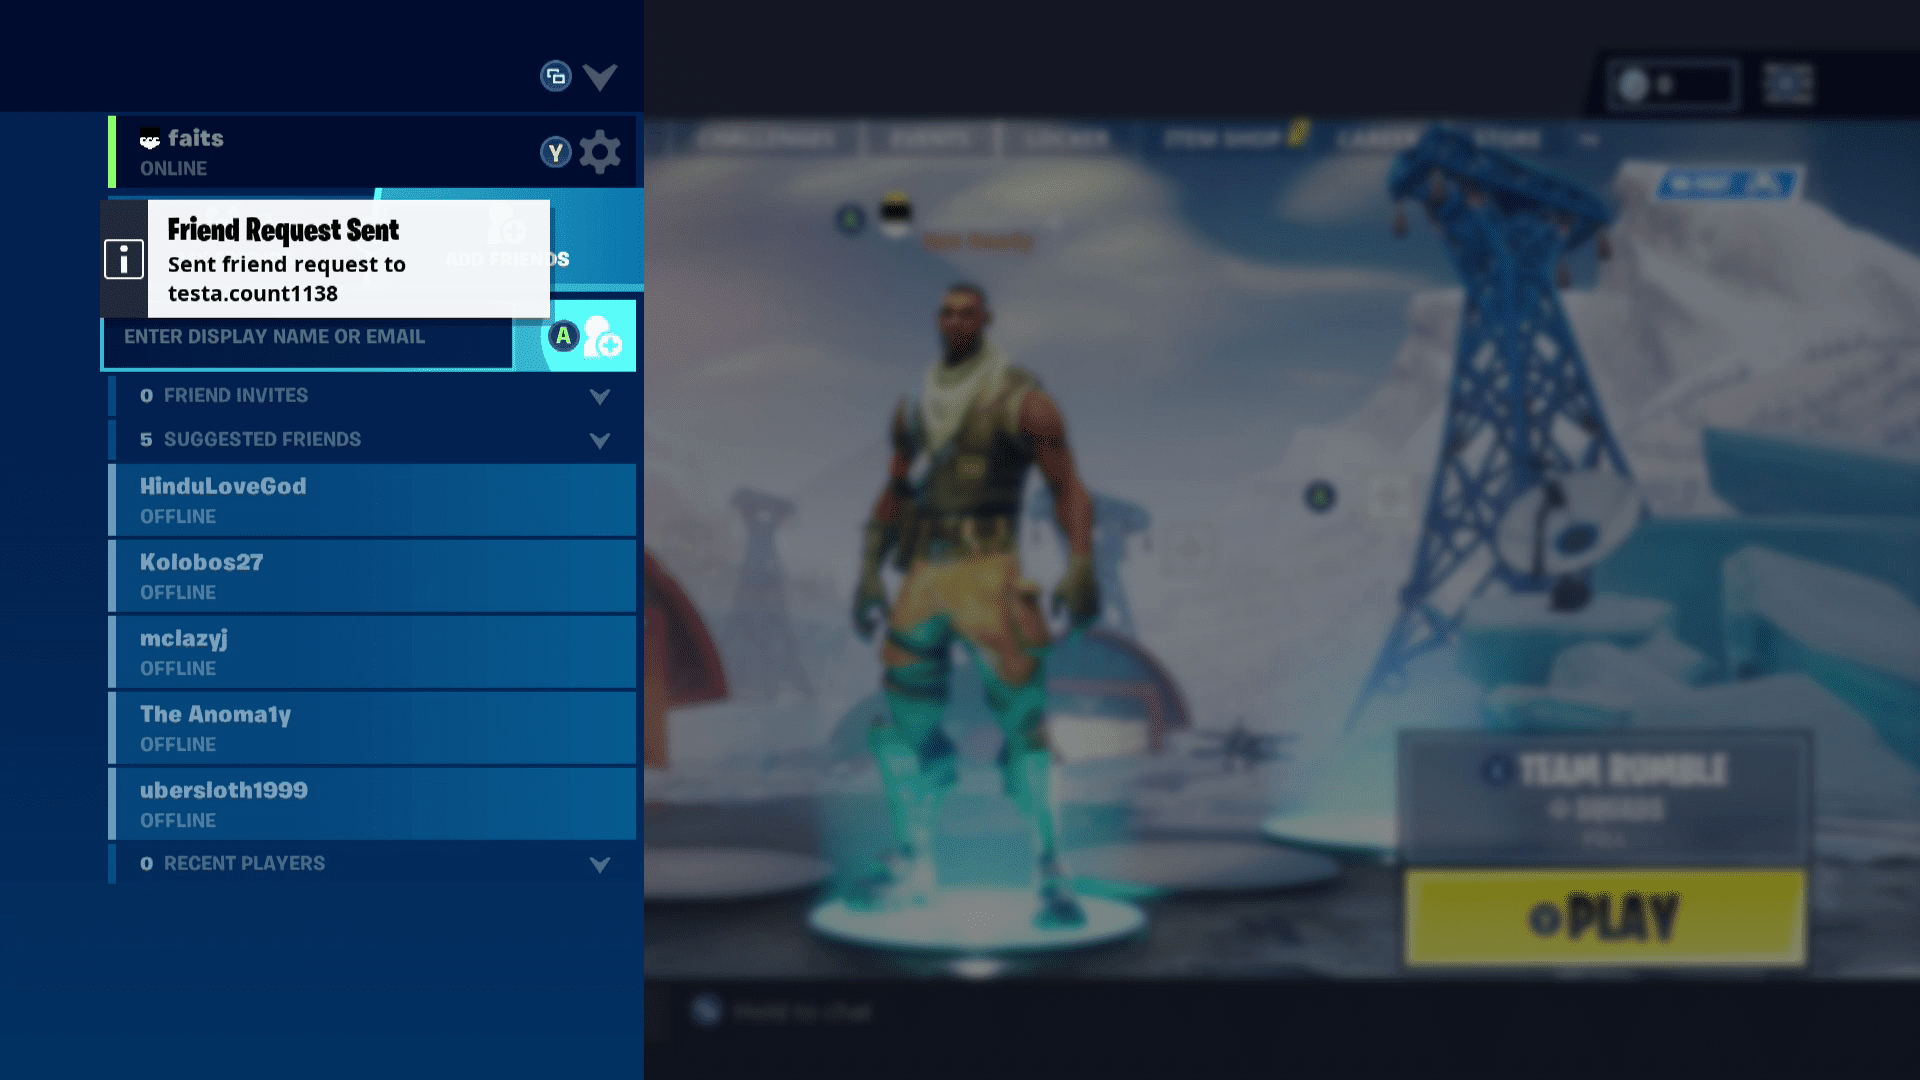 fortnite friend request - how to play fortnite offline on ps4